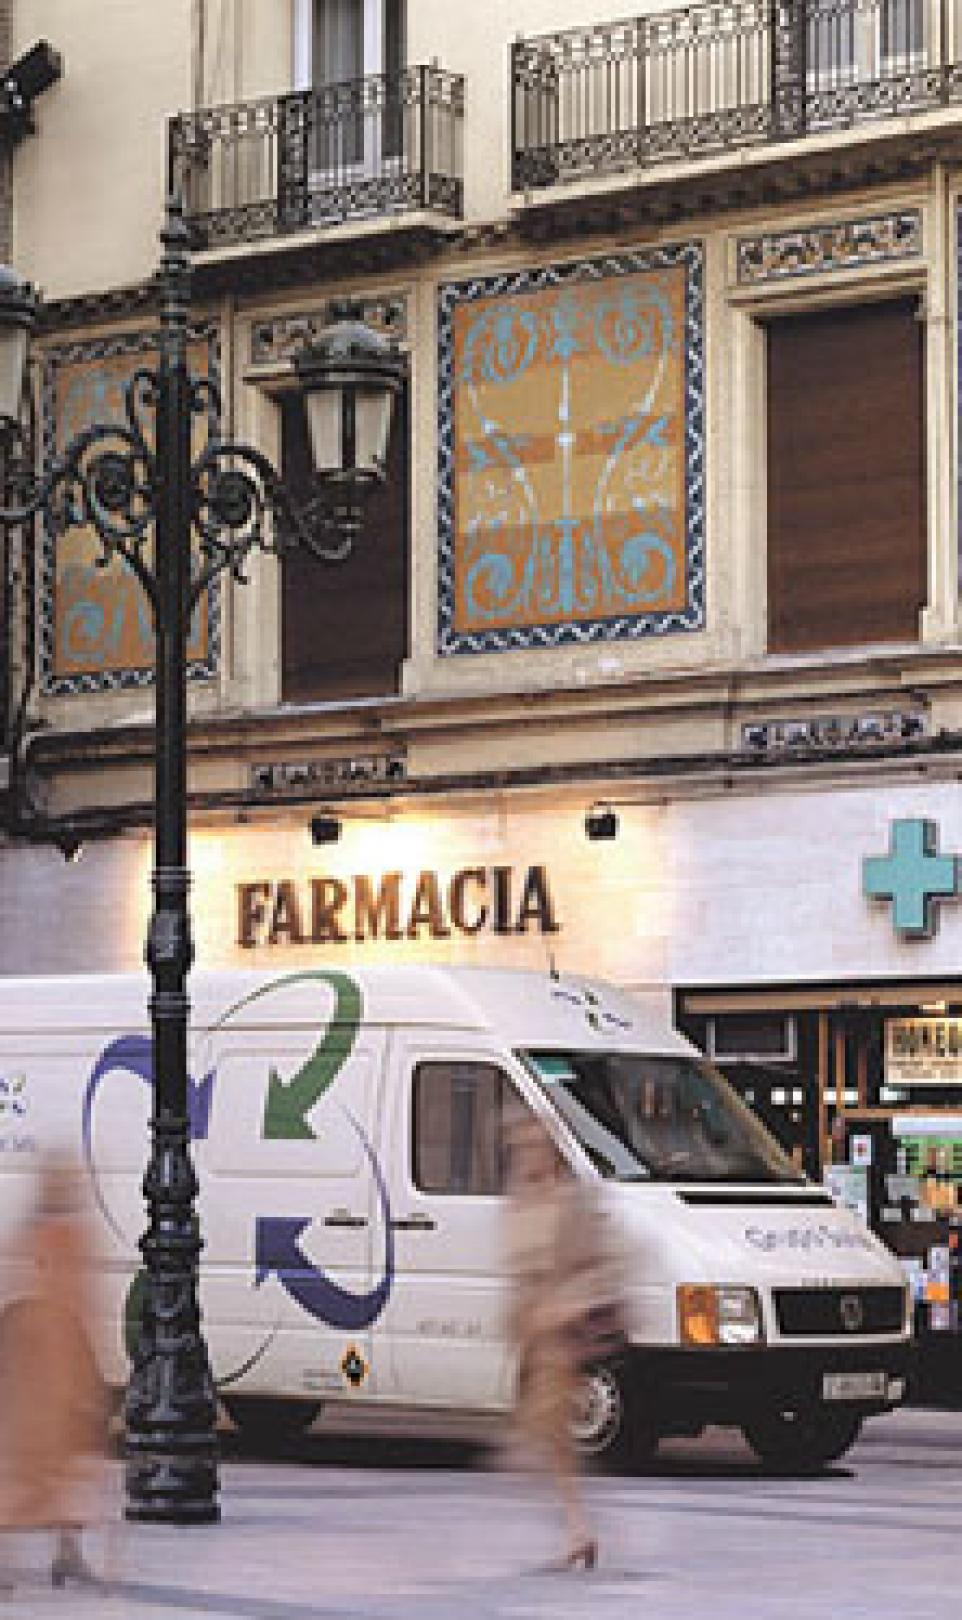 Storefront photograph of a pharmacy (Farmacia) in Spain